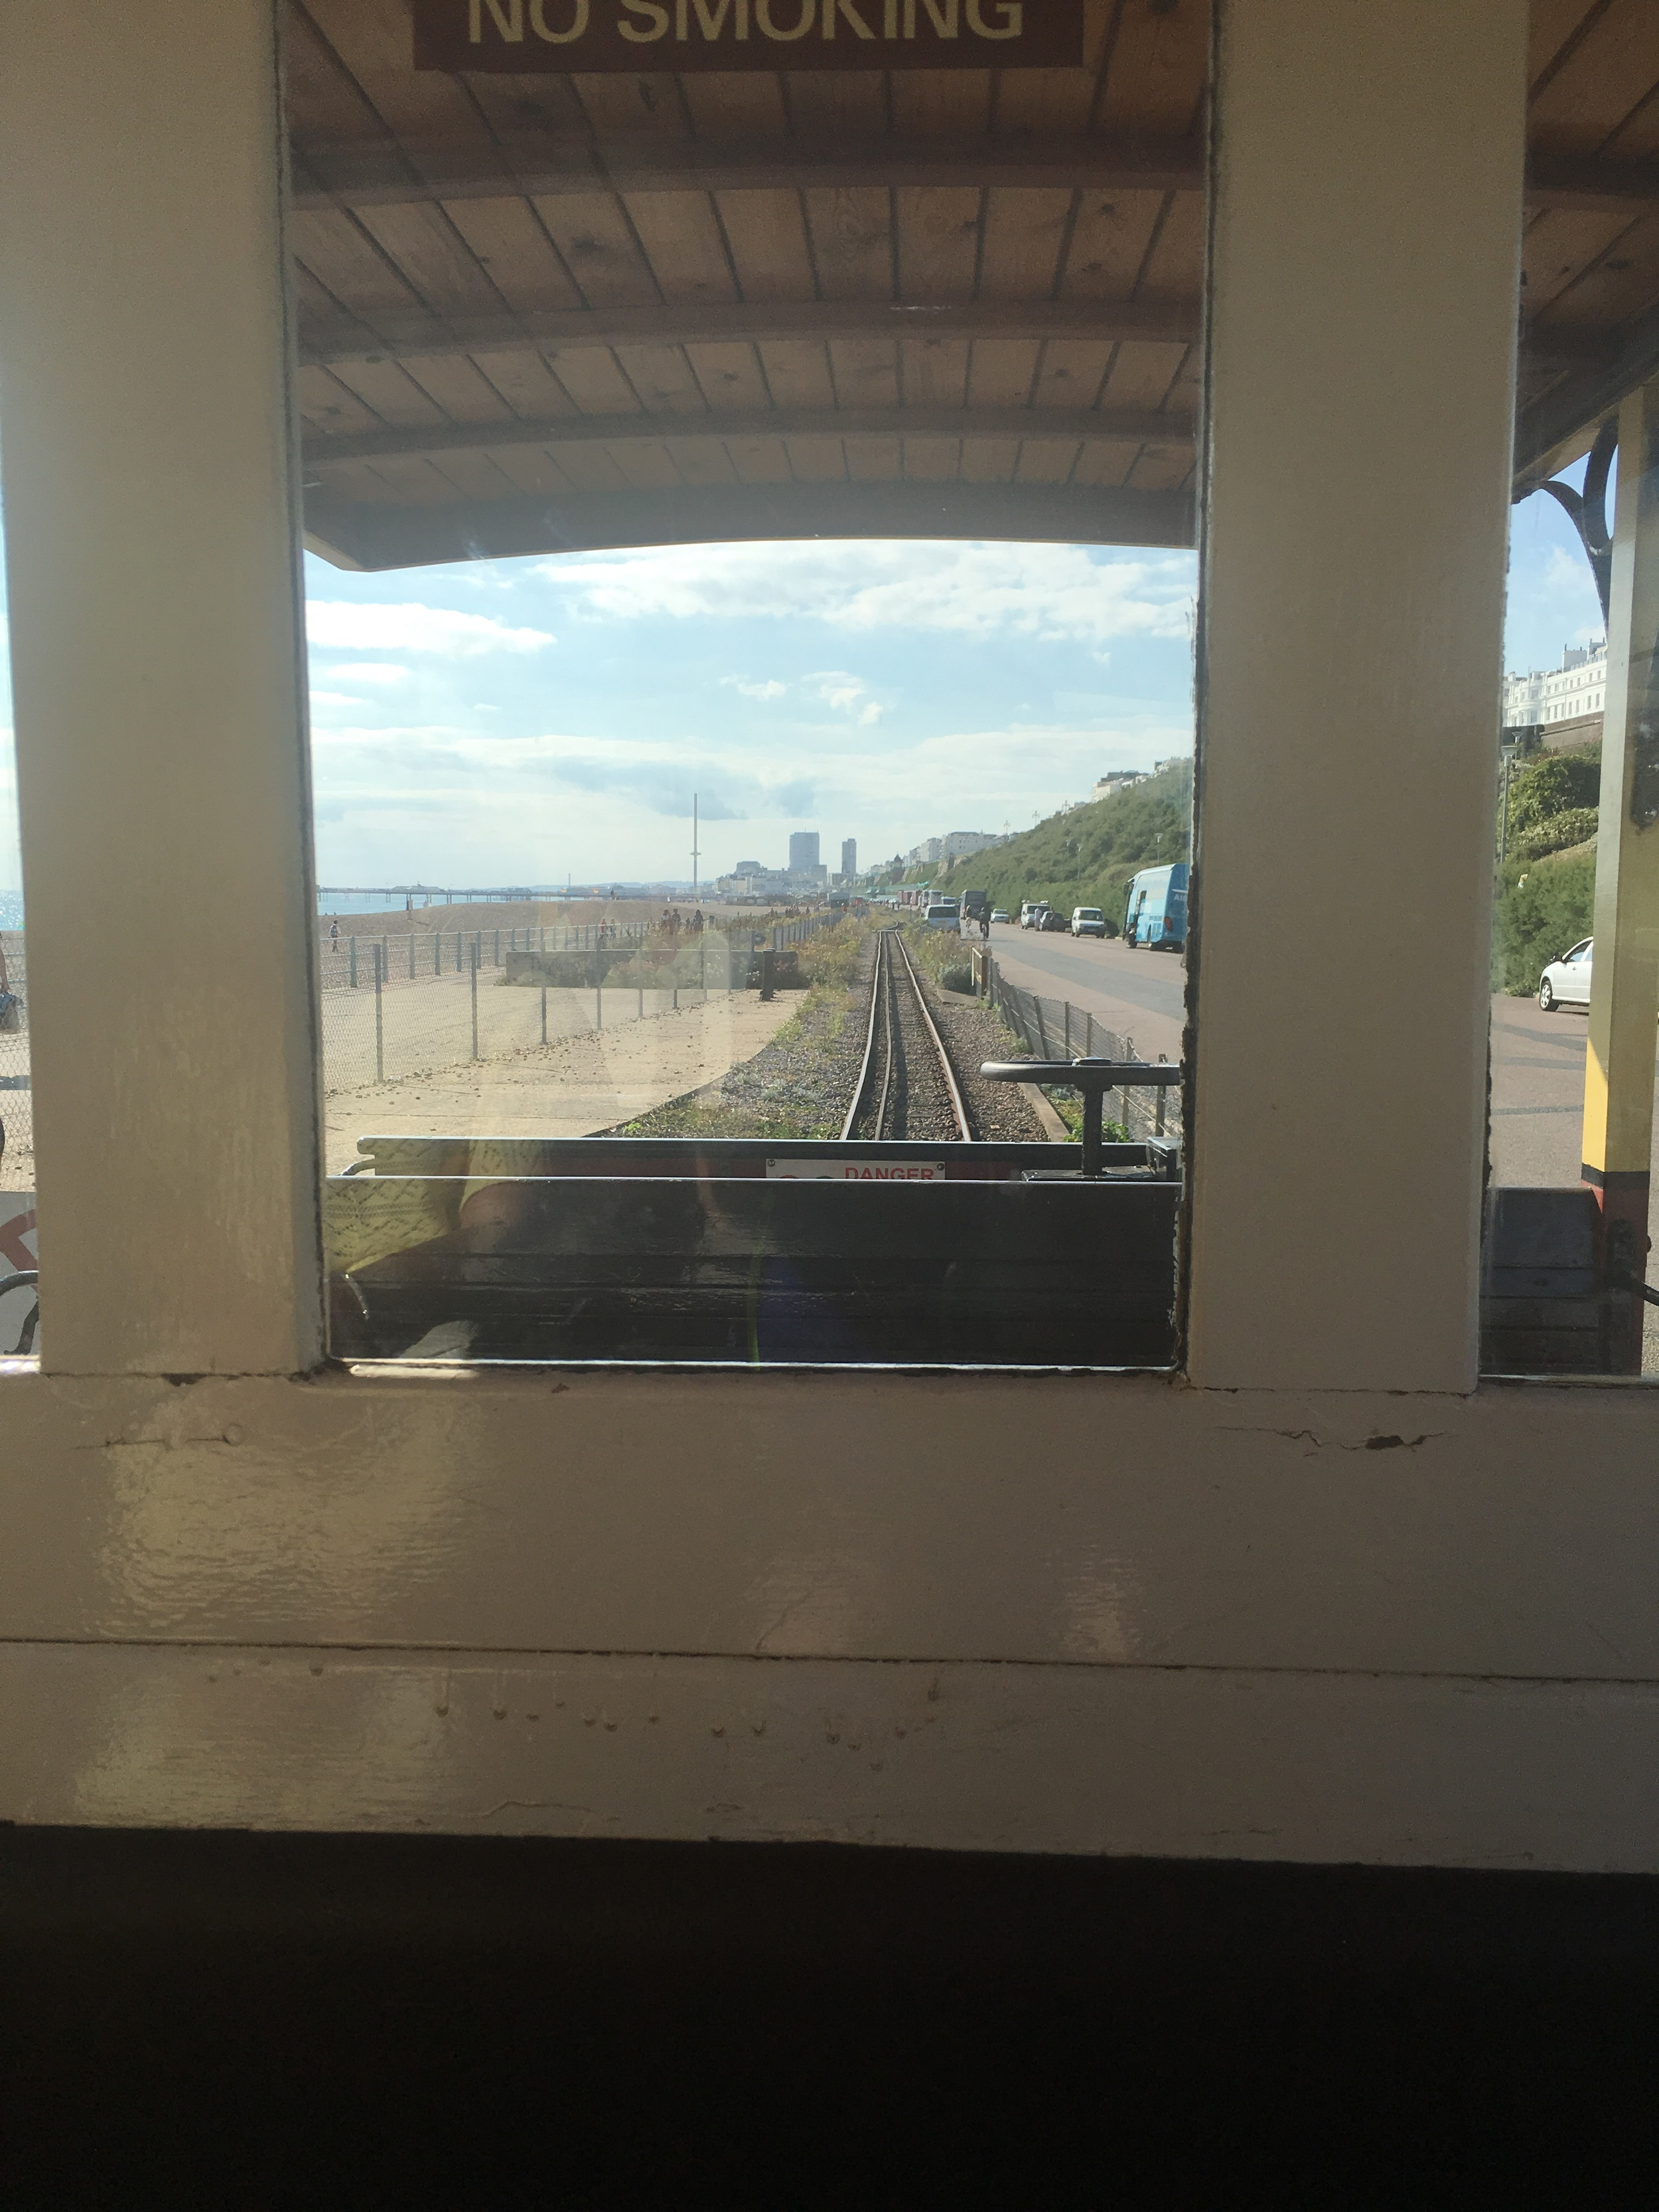 Our trip back from the Marina via Volks Railway